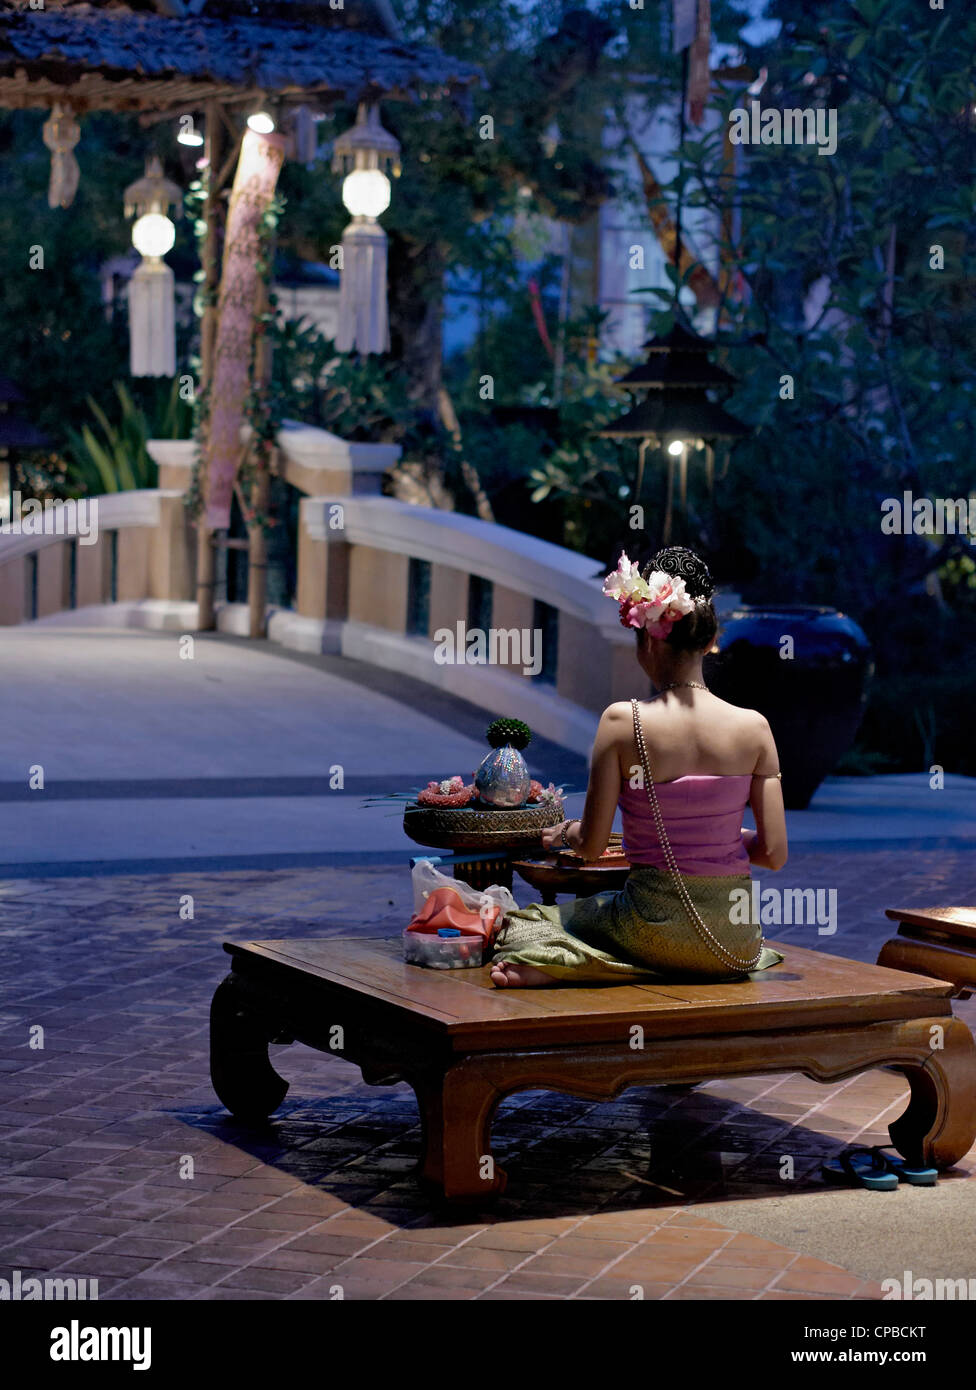 Thailand restaurant receptionist Traditionally dressed awaits to greet guests. Thailand S. E. Asia - Stock Image